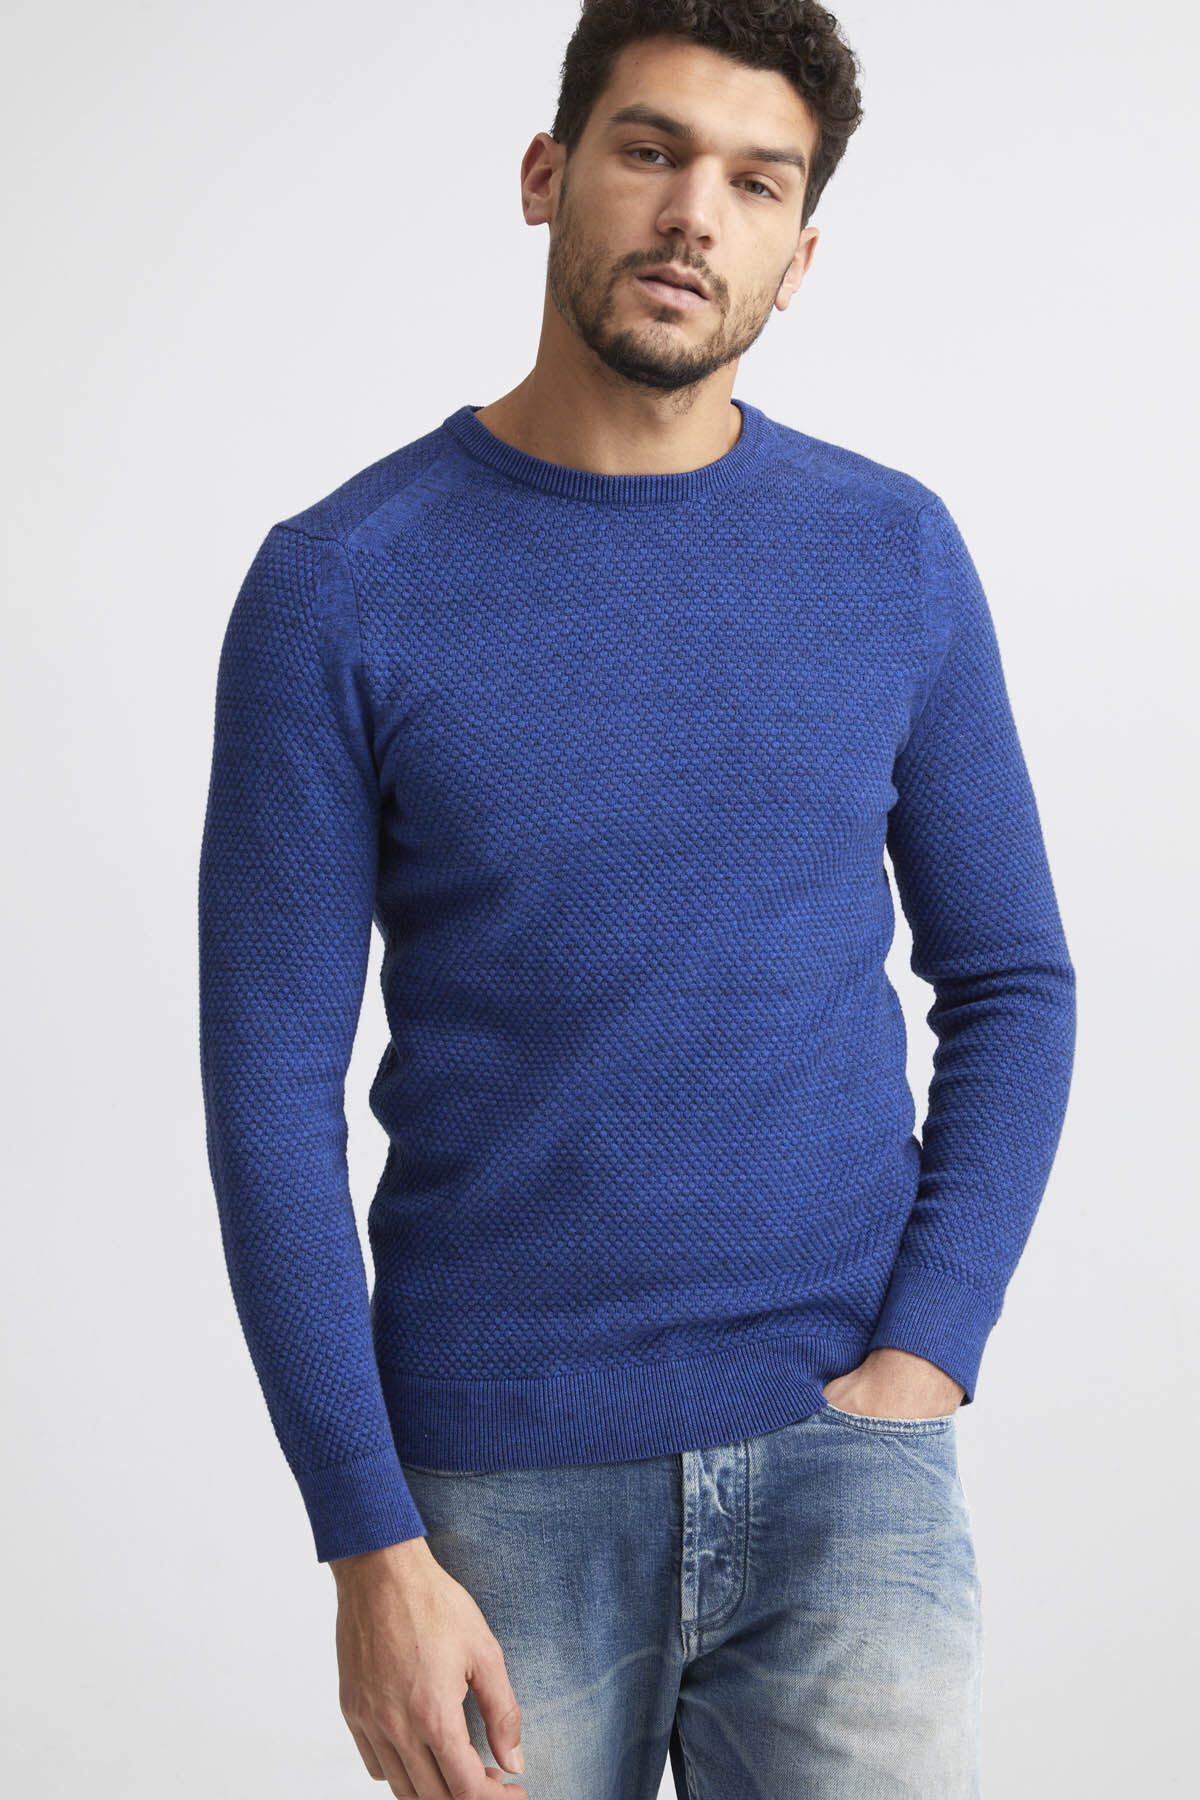 CAPTAIN BOBBLE KNIT LWBH